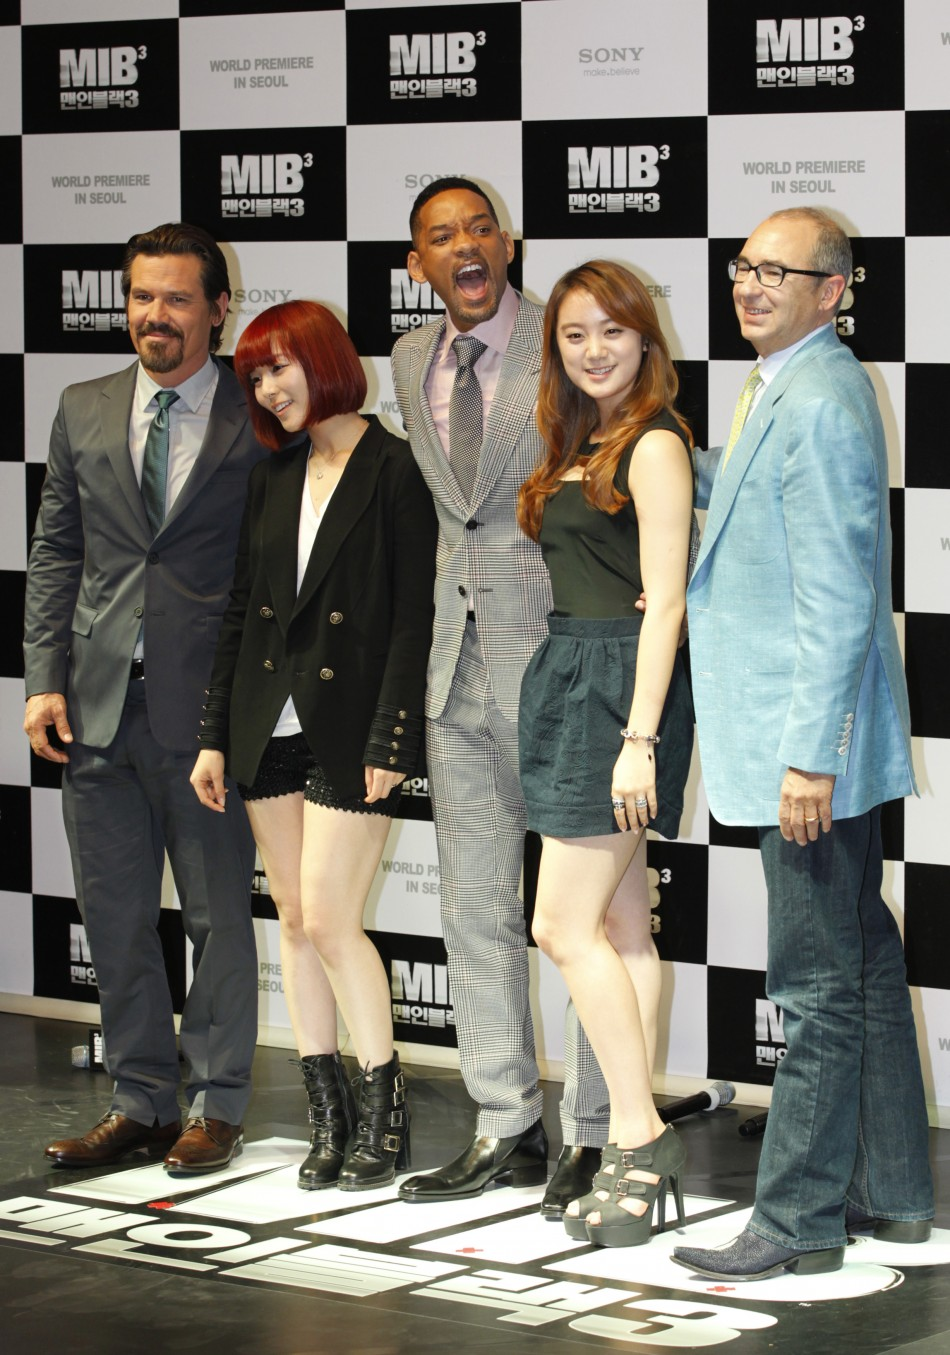 Cast members Will Smith and Josh Brolin pose together with director Barry Sonnenfeld and K-pop girl group, quotWonder Girlsquot members Sunye and Hyerim in Seoul